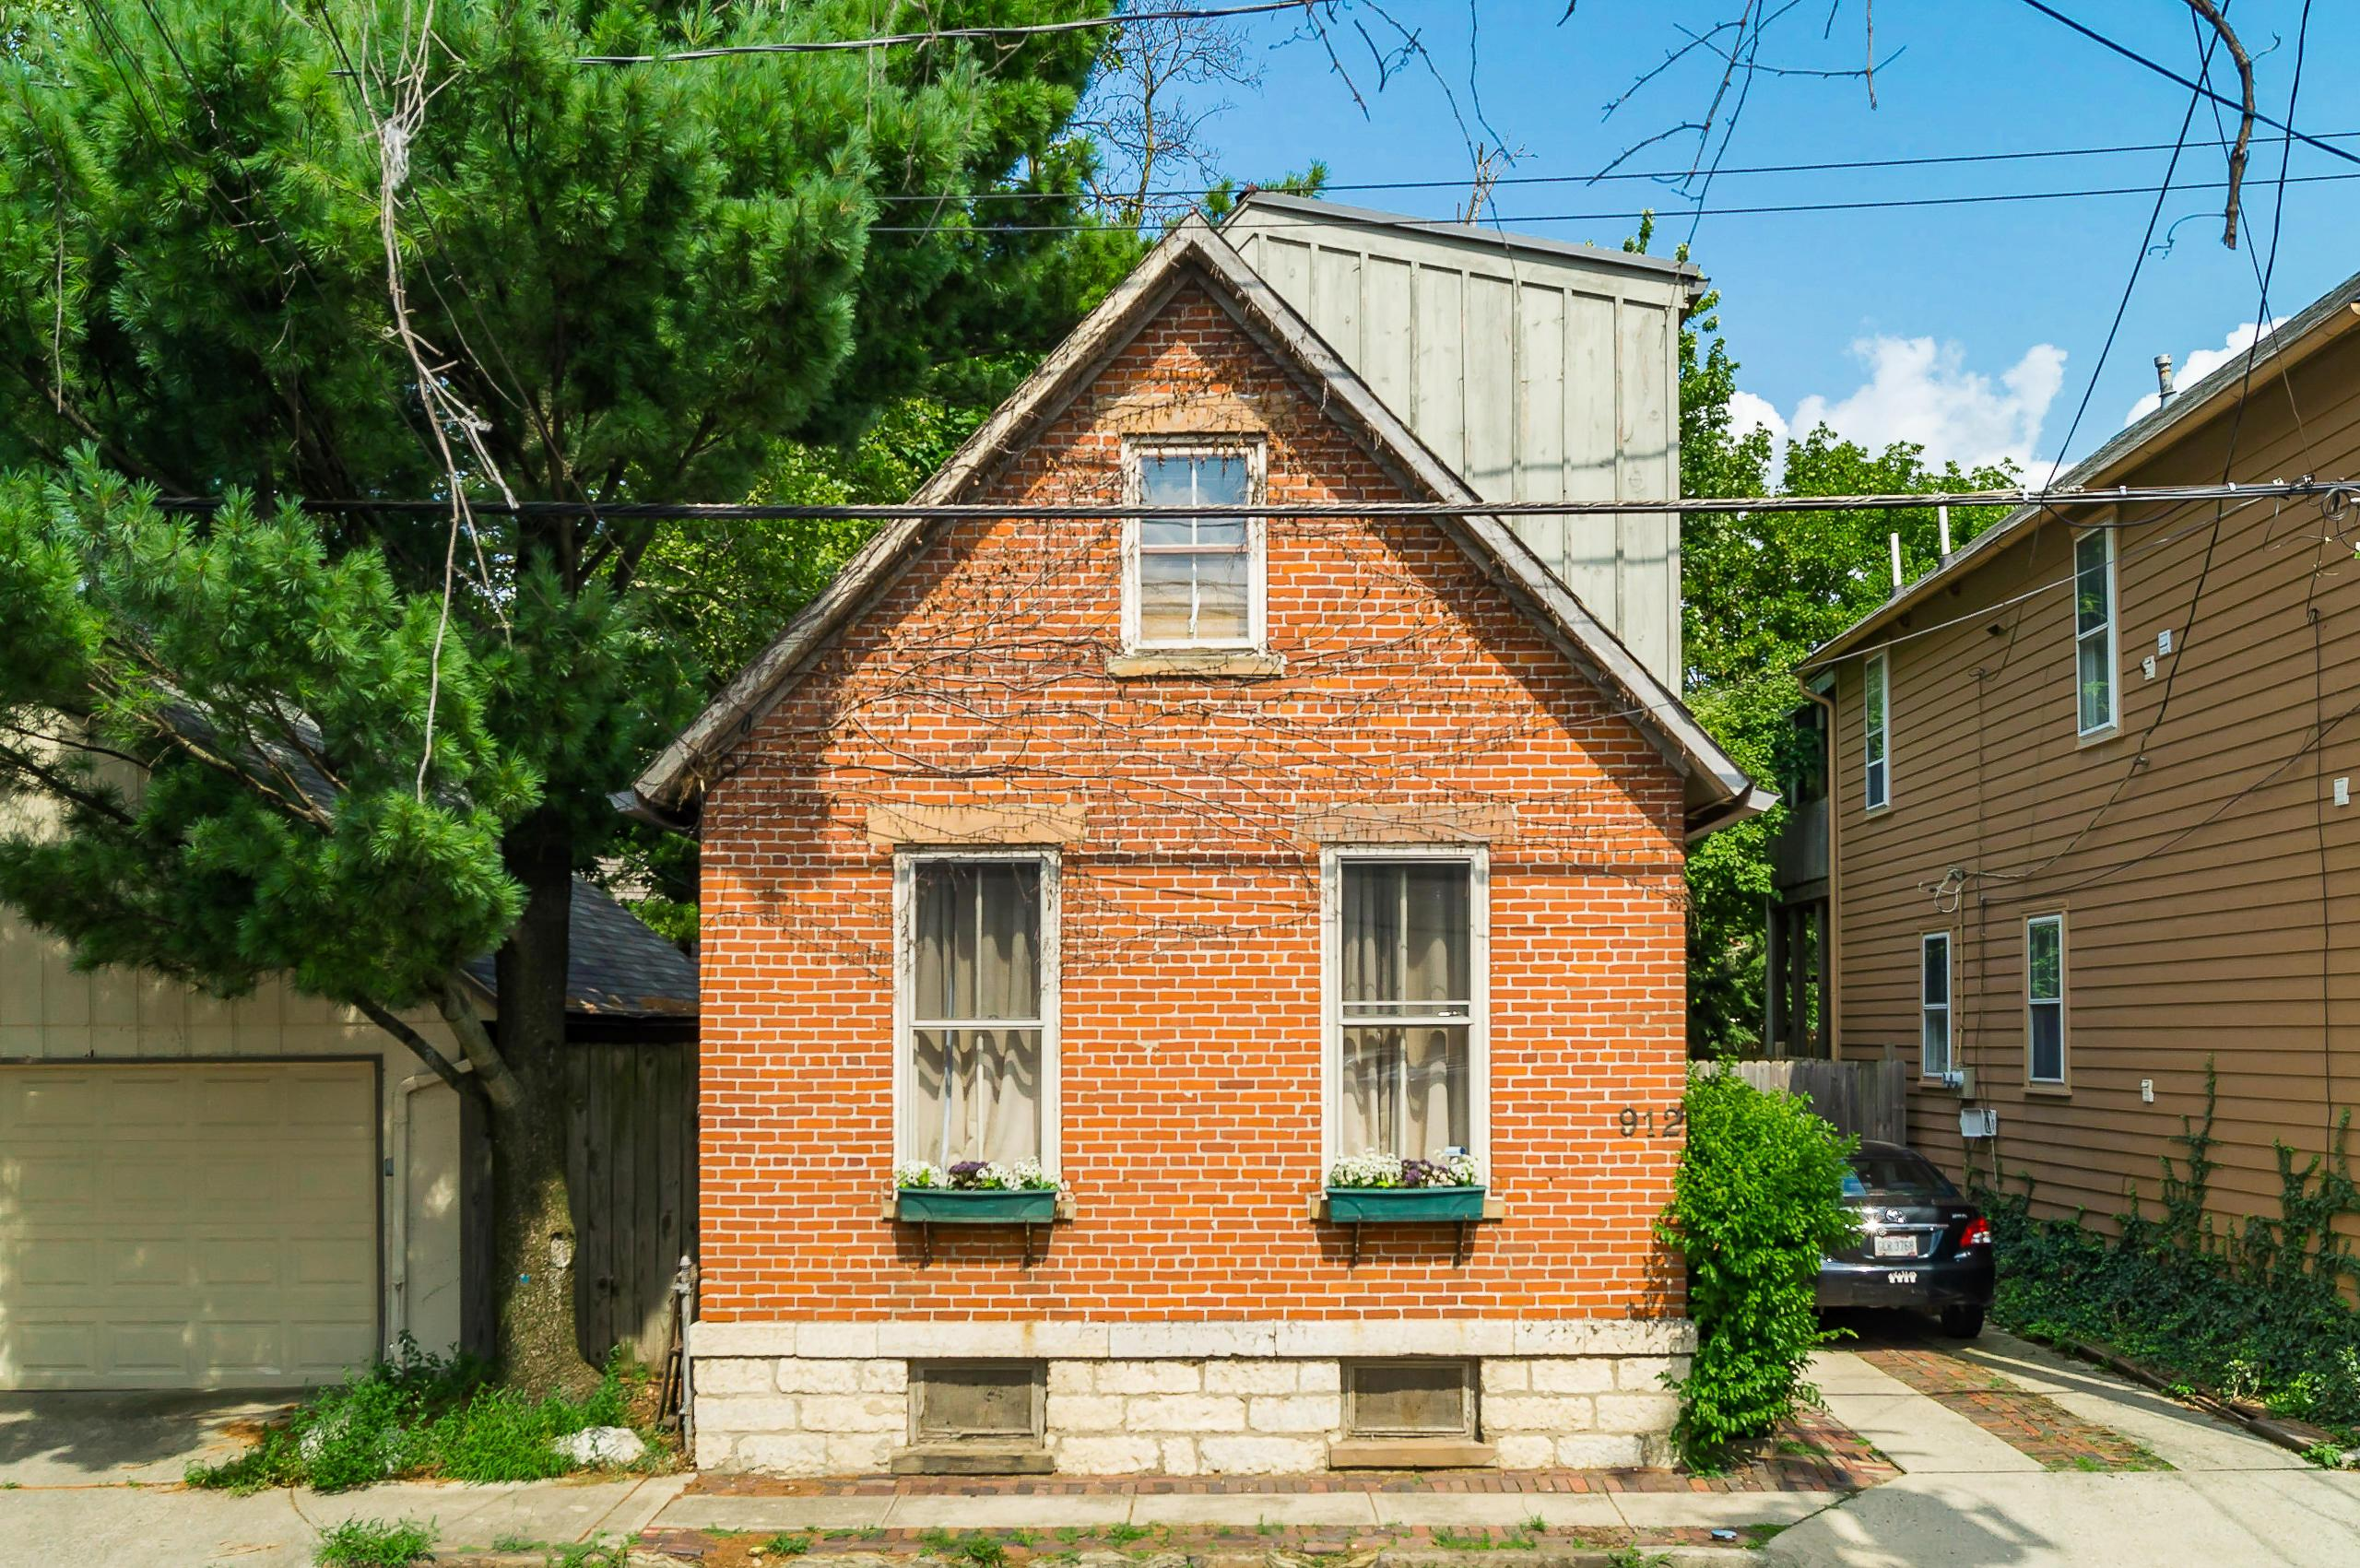 Photo of 912 Pearl Street, Columbus, OH 43206